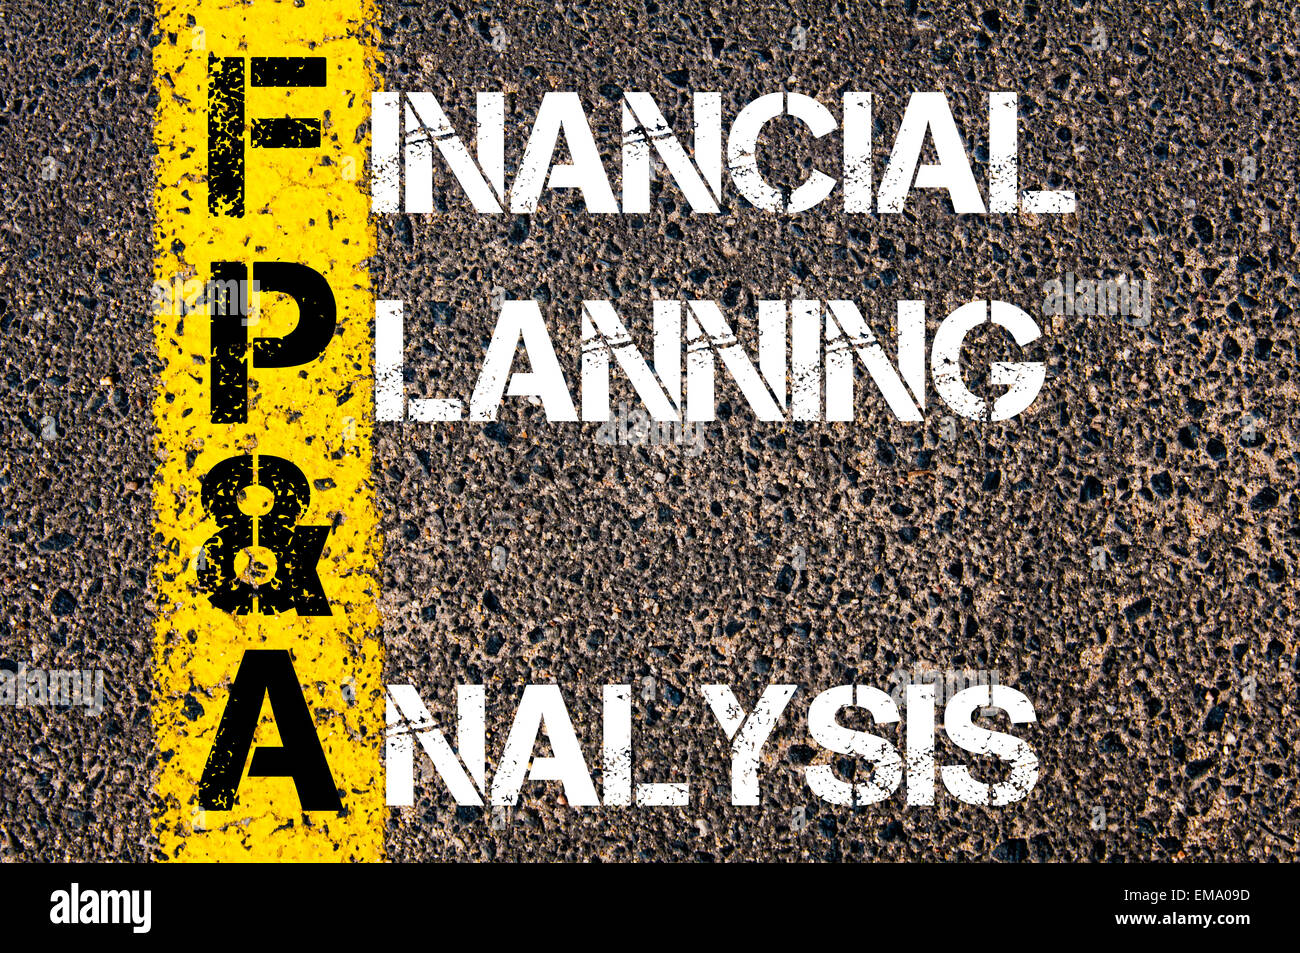 business acronym fpa financial planning analysis yellow paint line on the road against asphalt background conceptual image